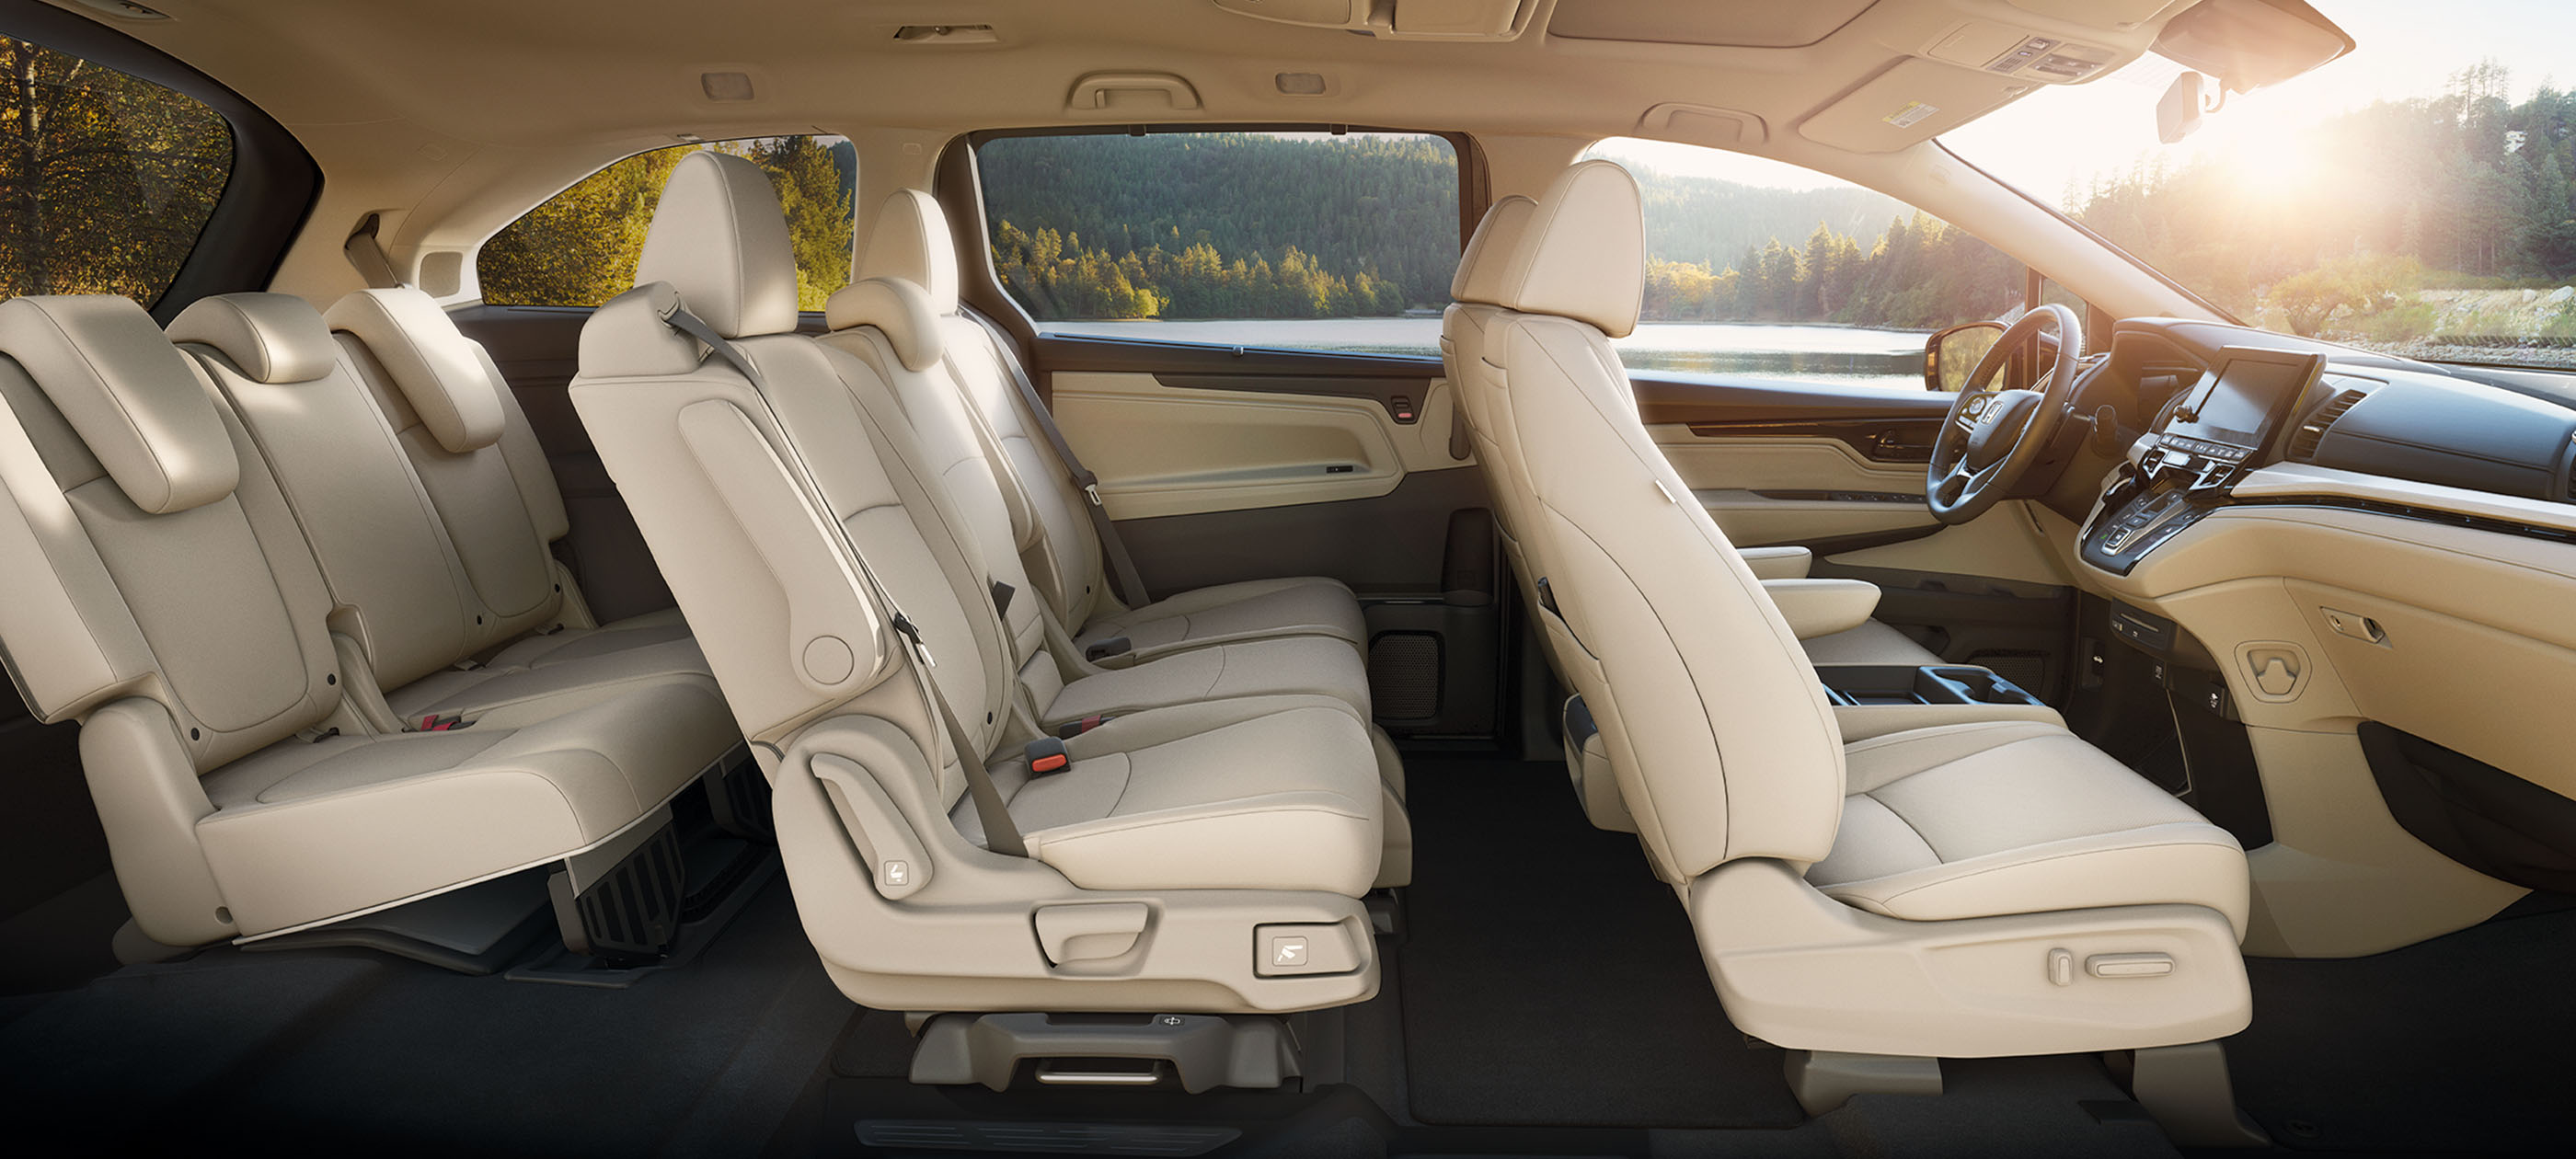 Interior passenger-side profile view of front and rear seats in the 2020 Honda Odyssey with Beige Leather.